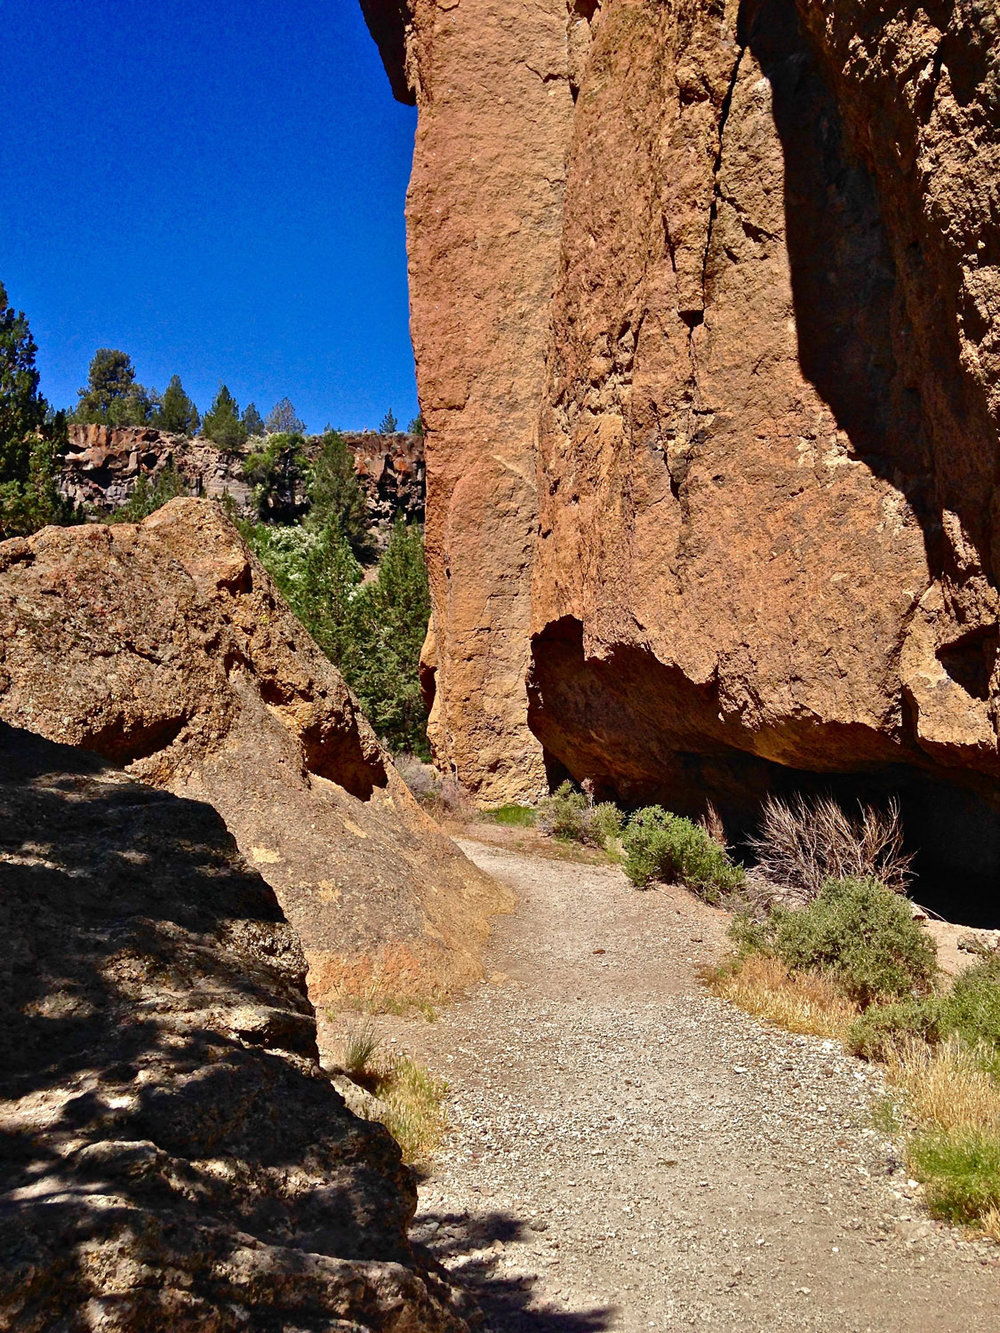 Natural caves with climbing routes nearby make for an interesting journey along the River Trail at Smith Rock State Park.